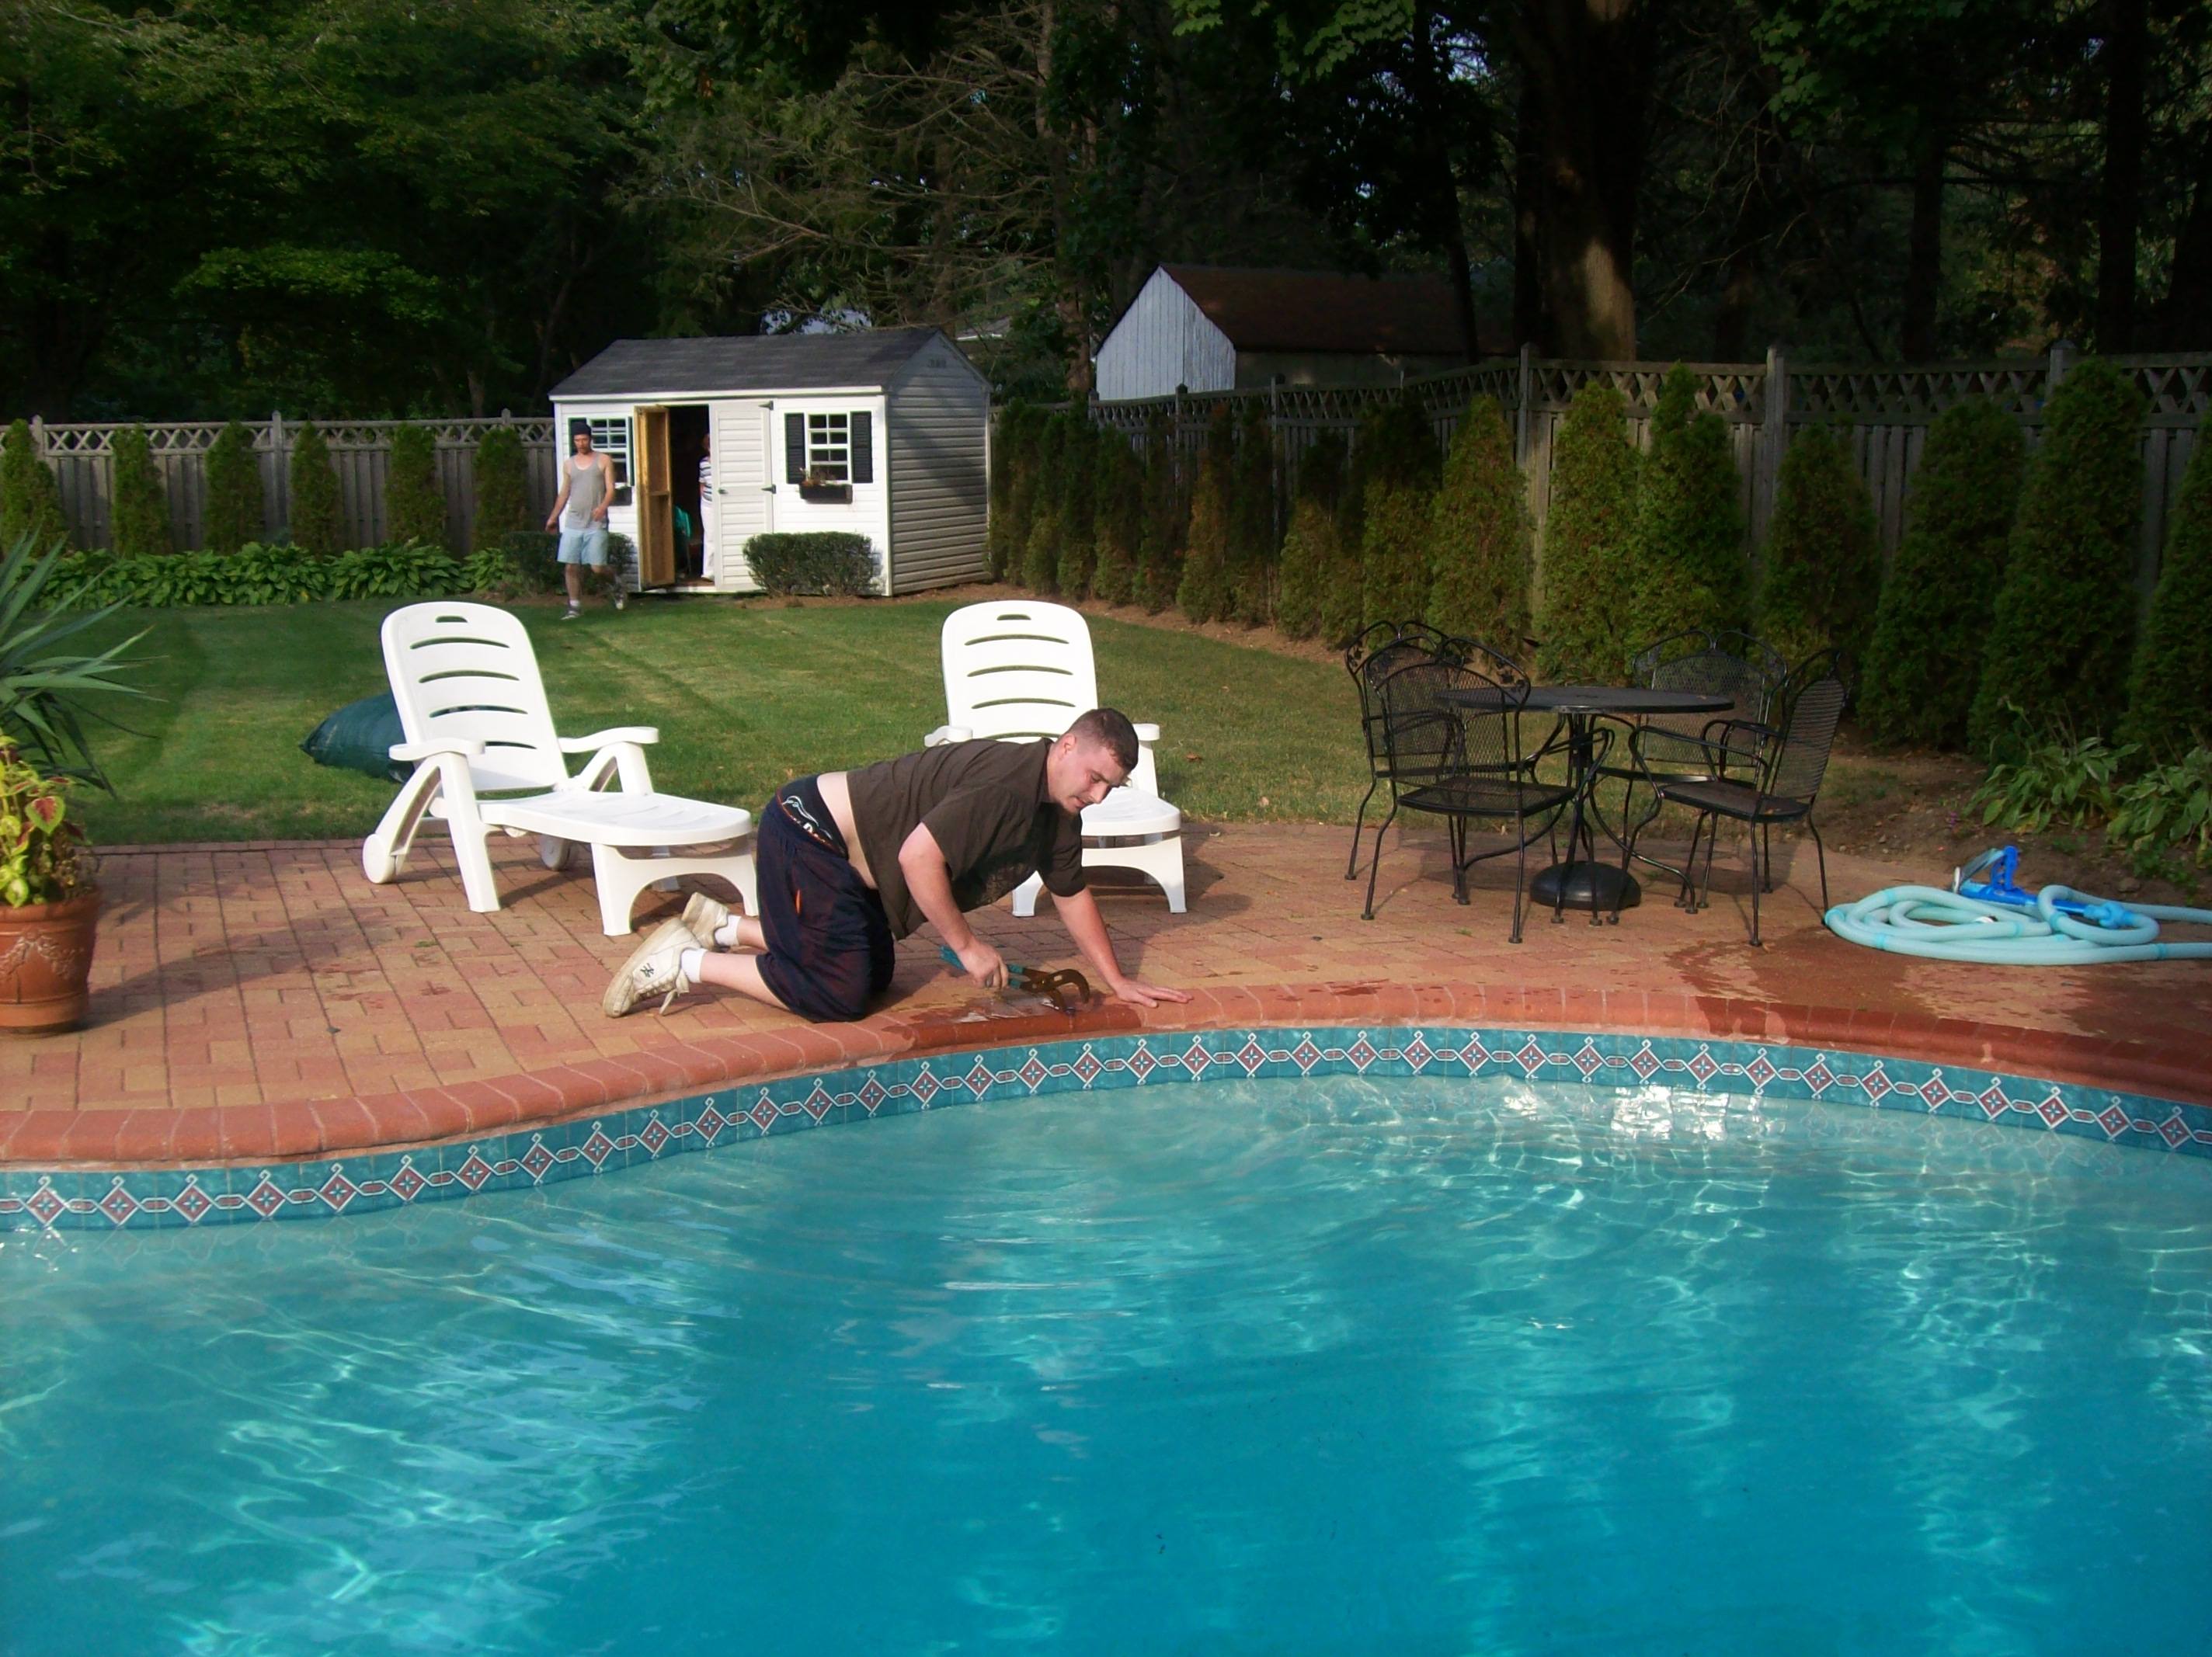 Pool Guy Action Shots